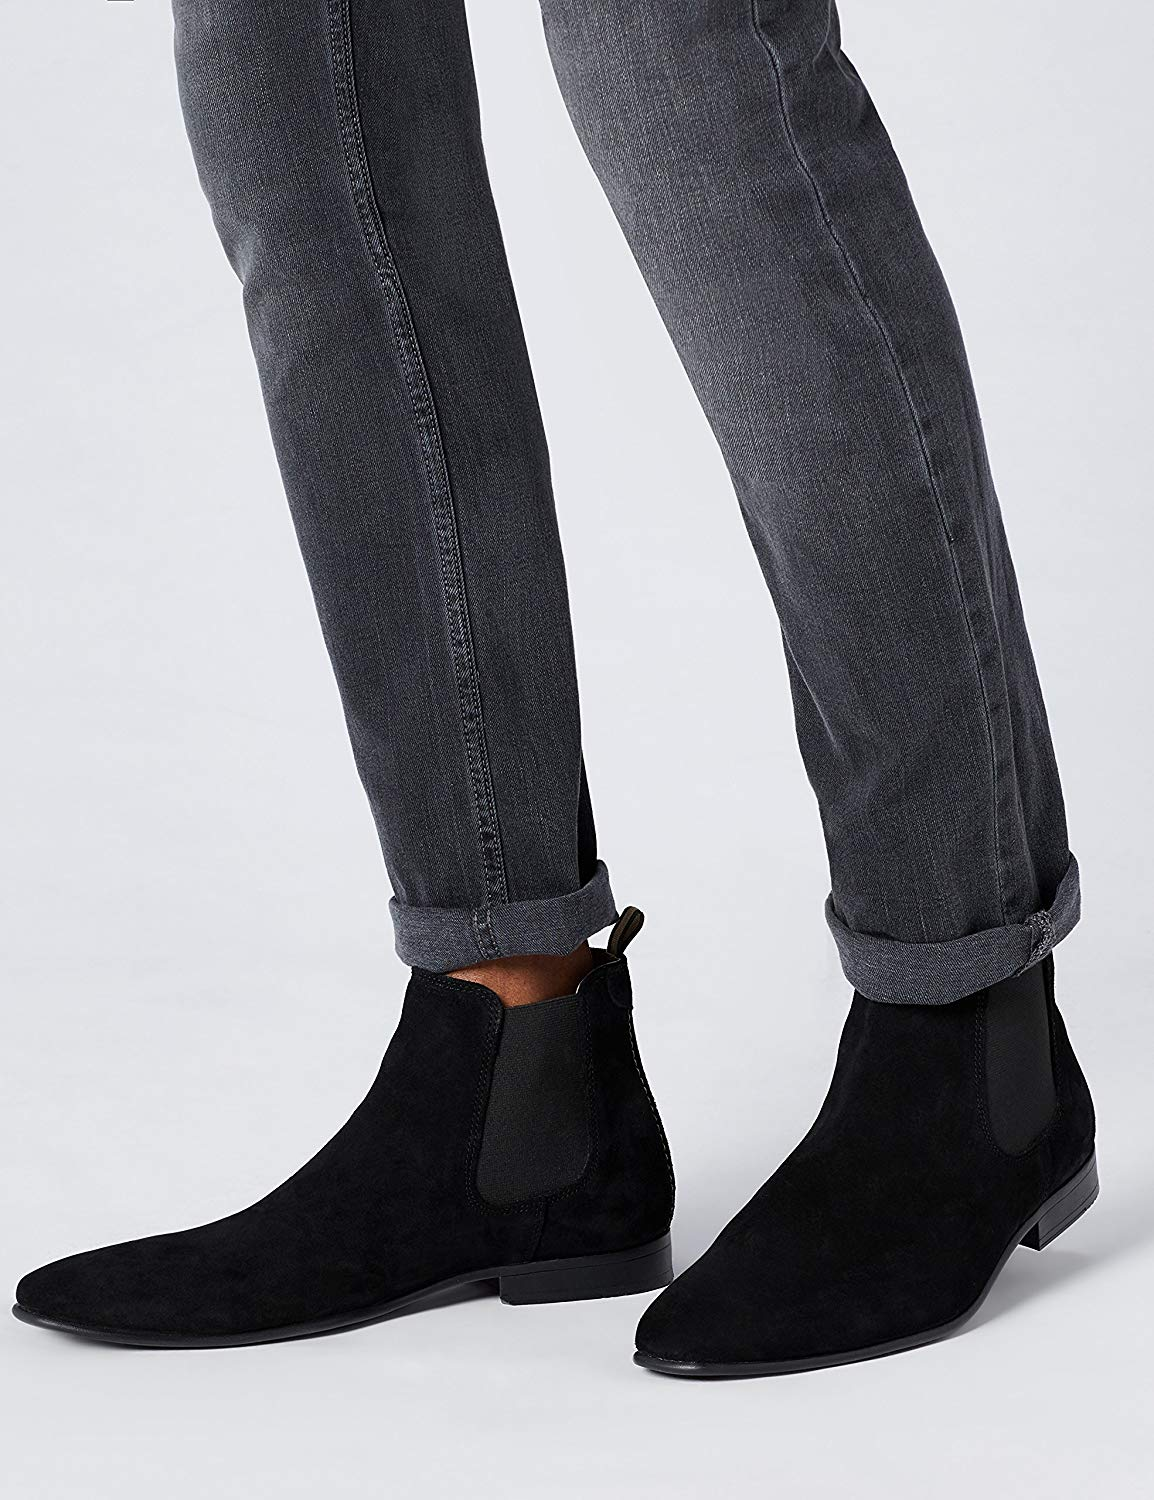 606c0997677fe Details about Amazon Brand - find. Men's Albany Formal Suede Chelsea Boots,  Black, Size 11.5 Y